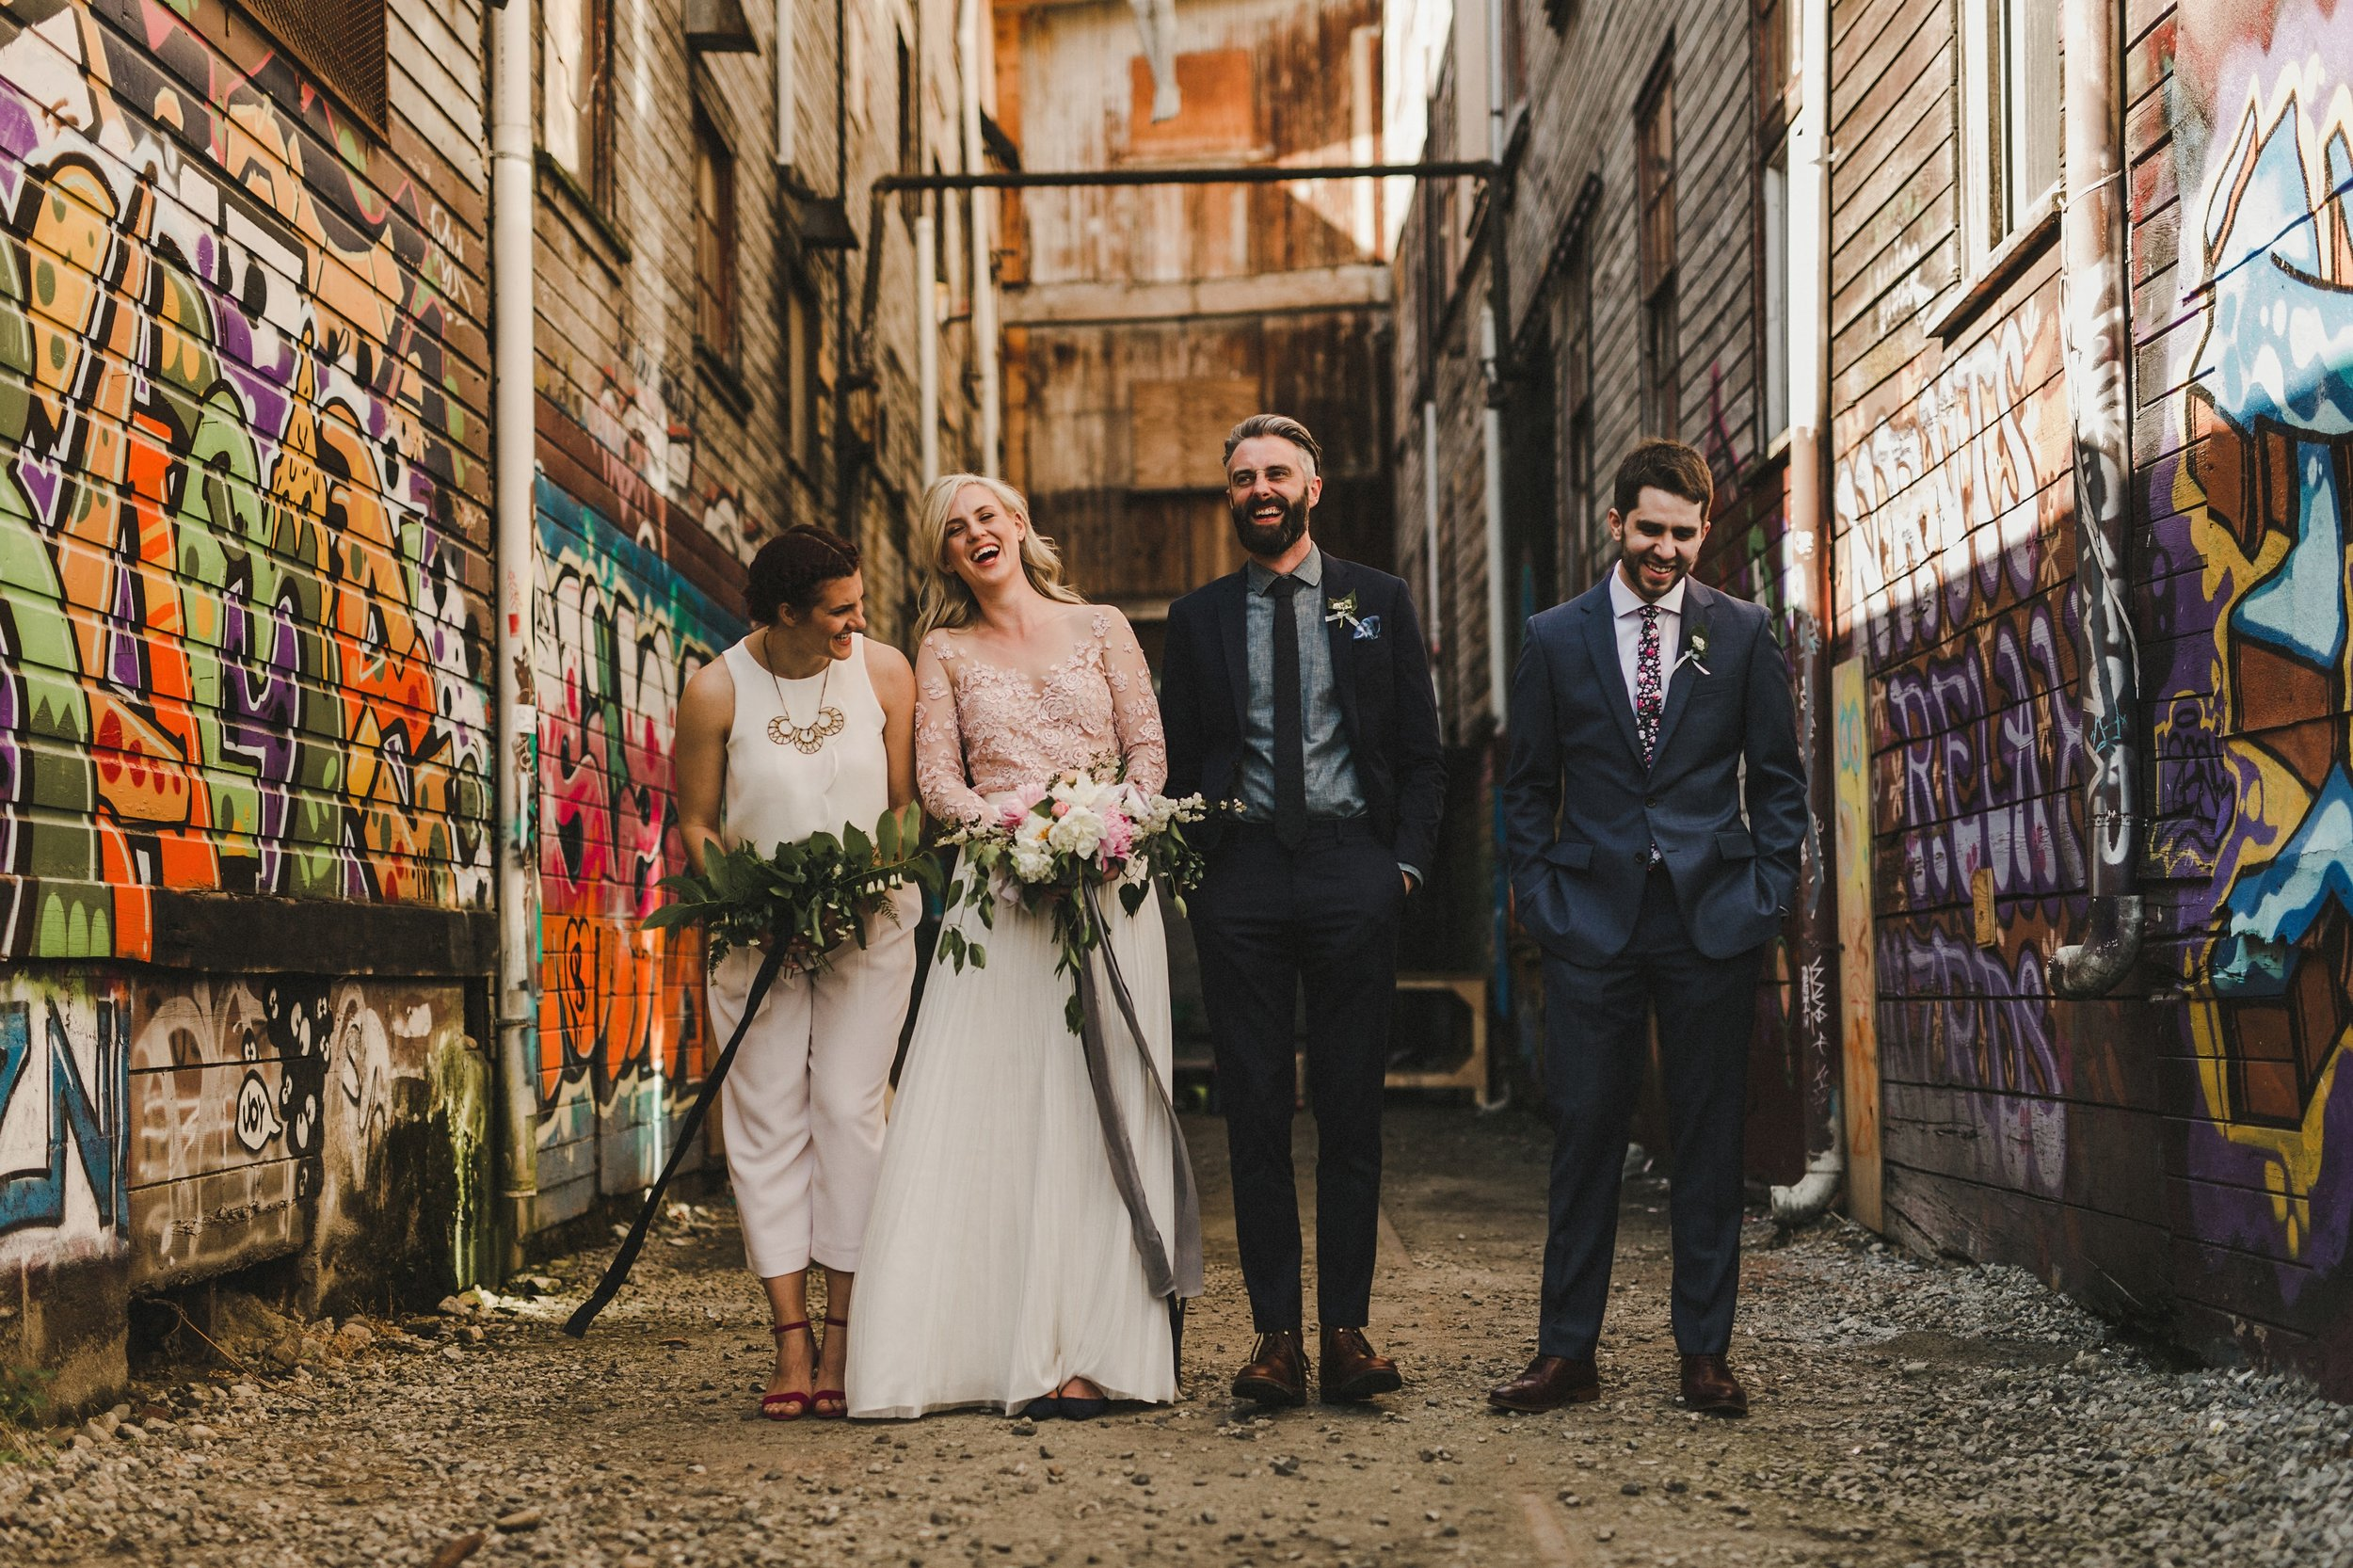 HOWE ABOUT FOREVA - Vancouver urban woodshop wedding by Shari + Mike photographers - wedding party